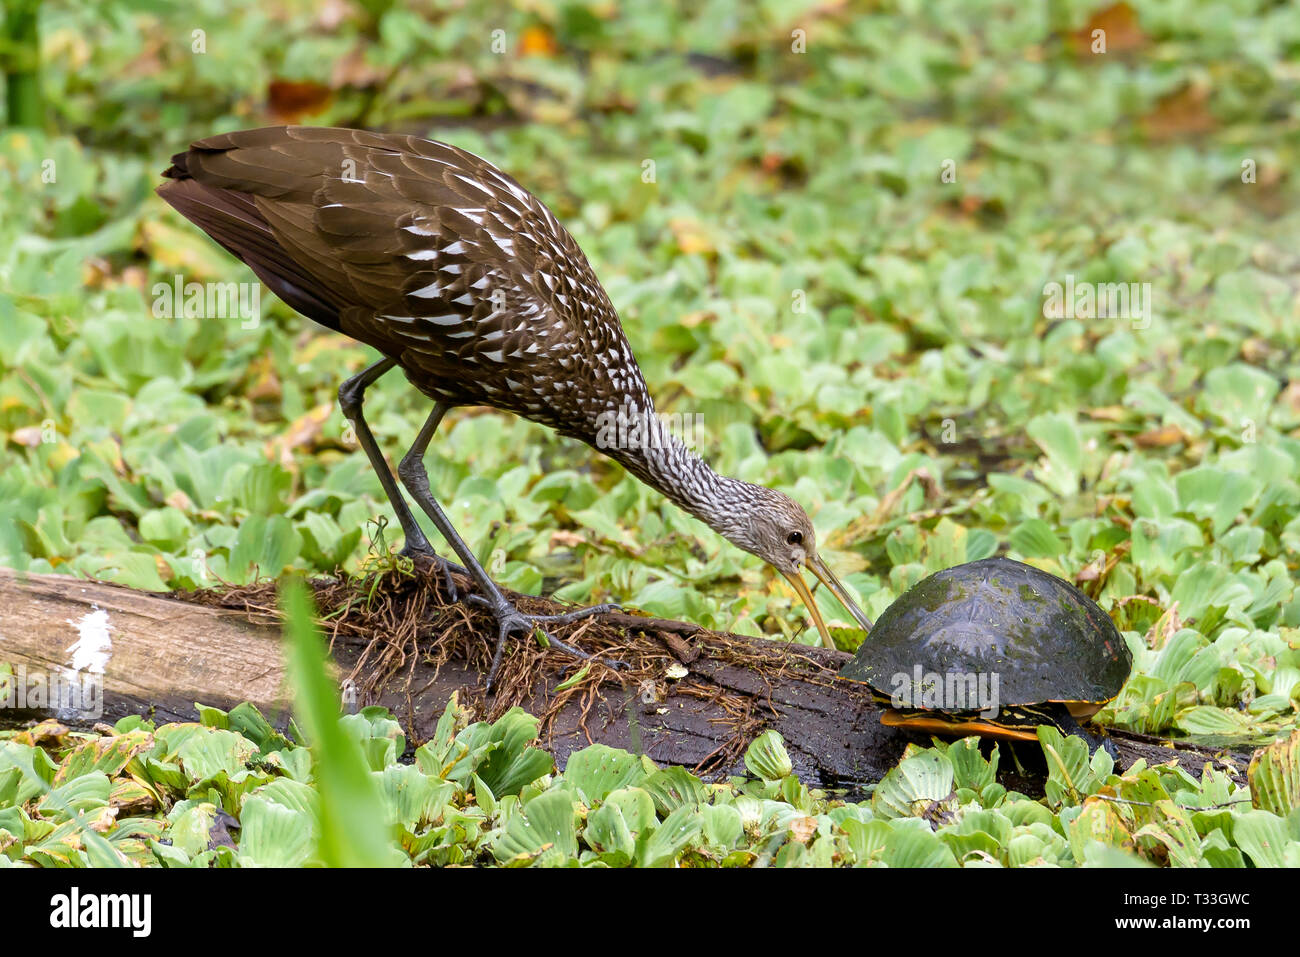 A limpkin (Aramus guarauna) and a Florida red-bellied cooter (Pseudemys nelsoni) on a log surrounded by water cabbage in Corkscrew Swamp Sanctuary, Fl Stock Photo